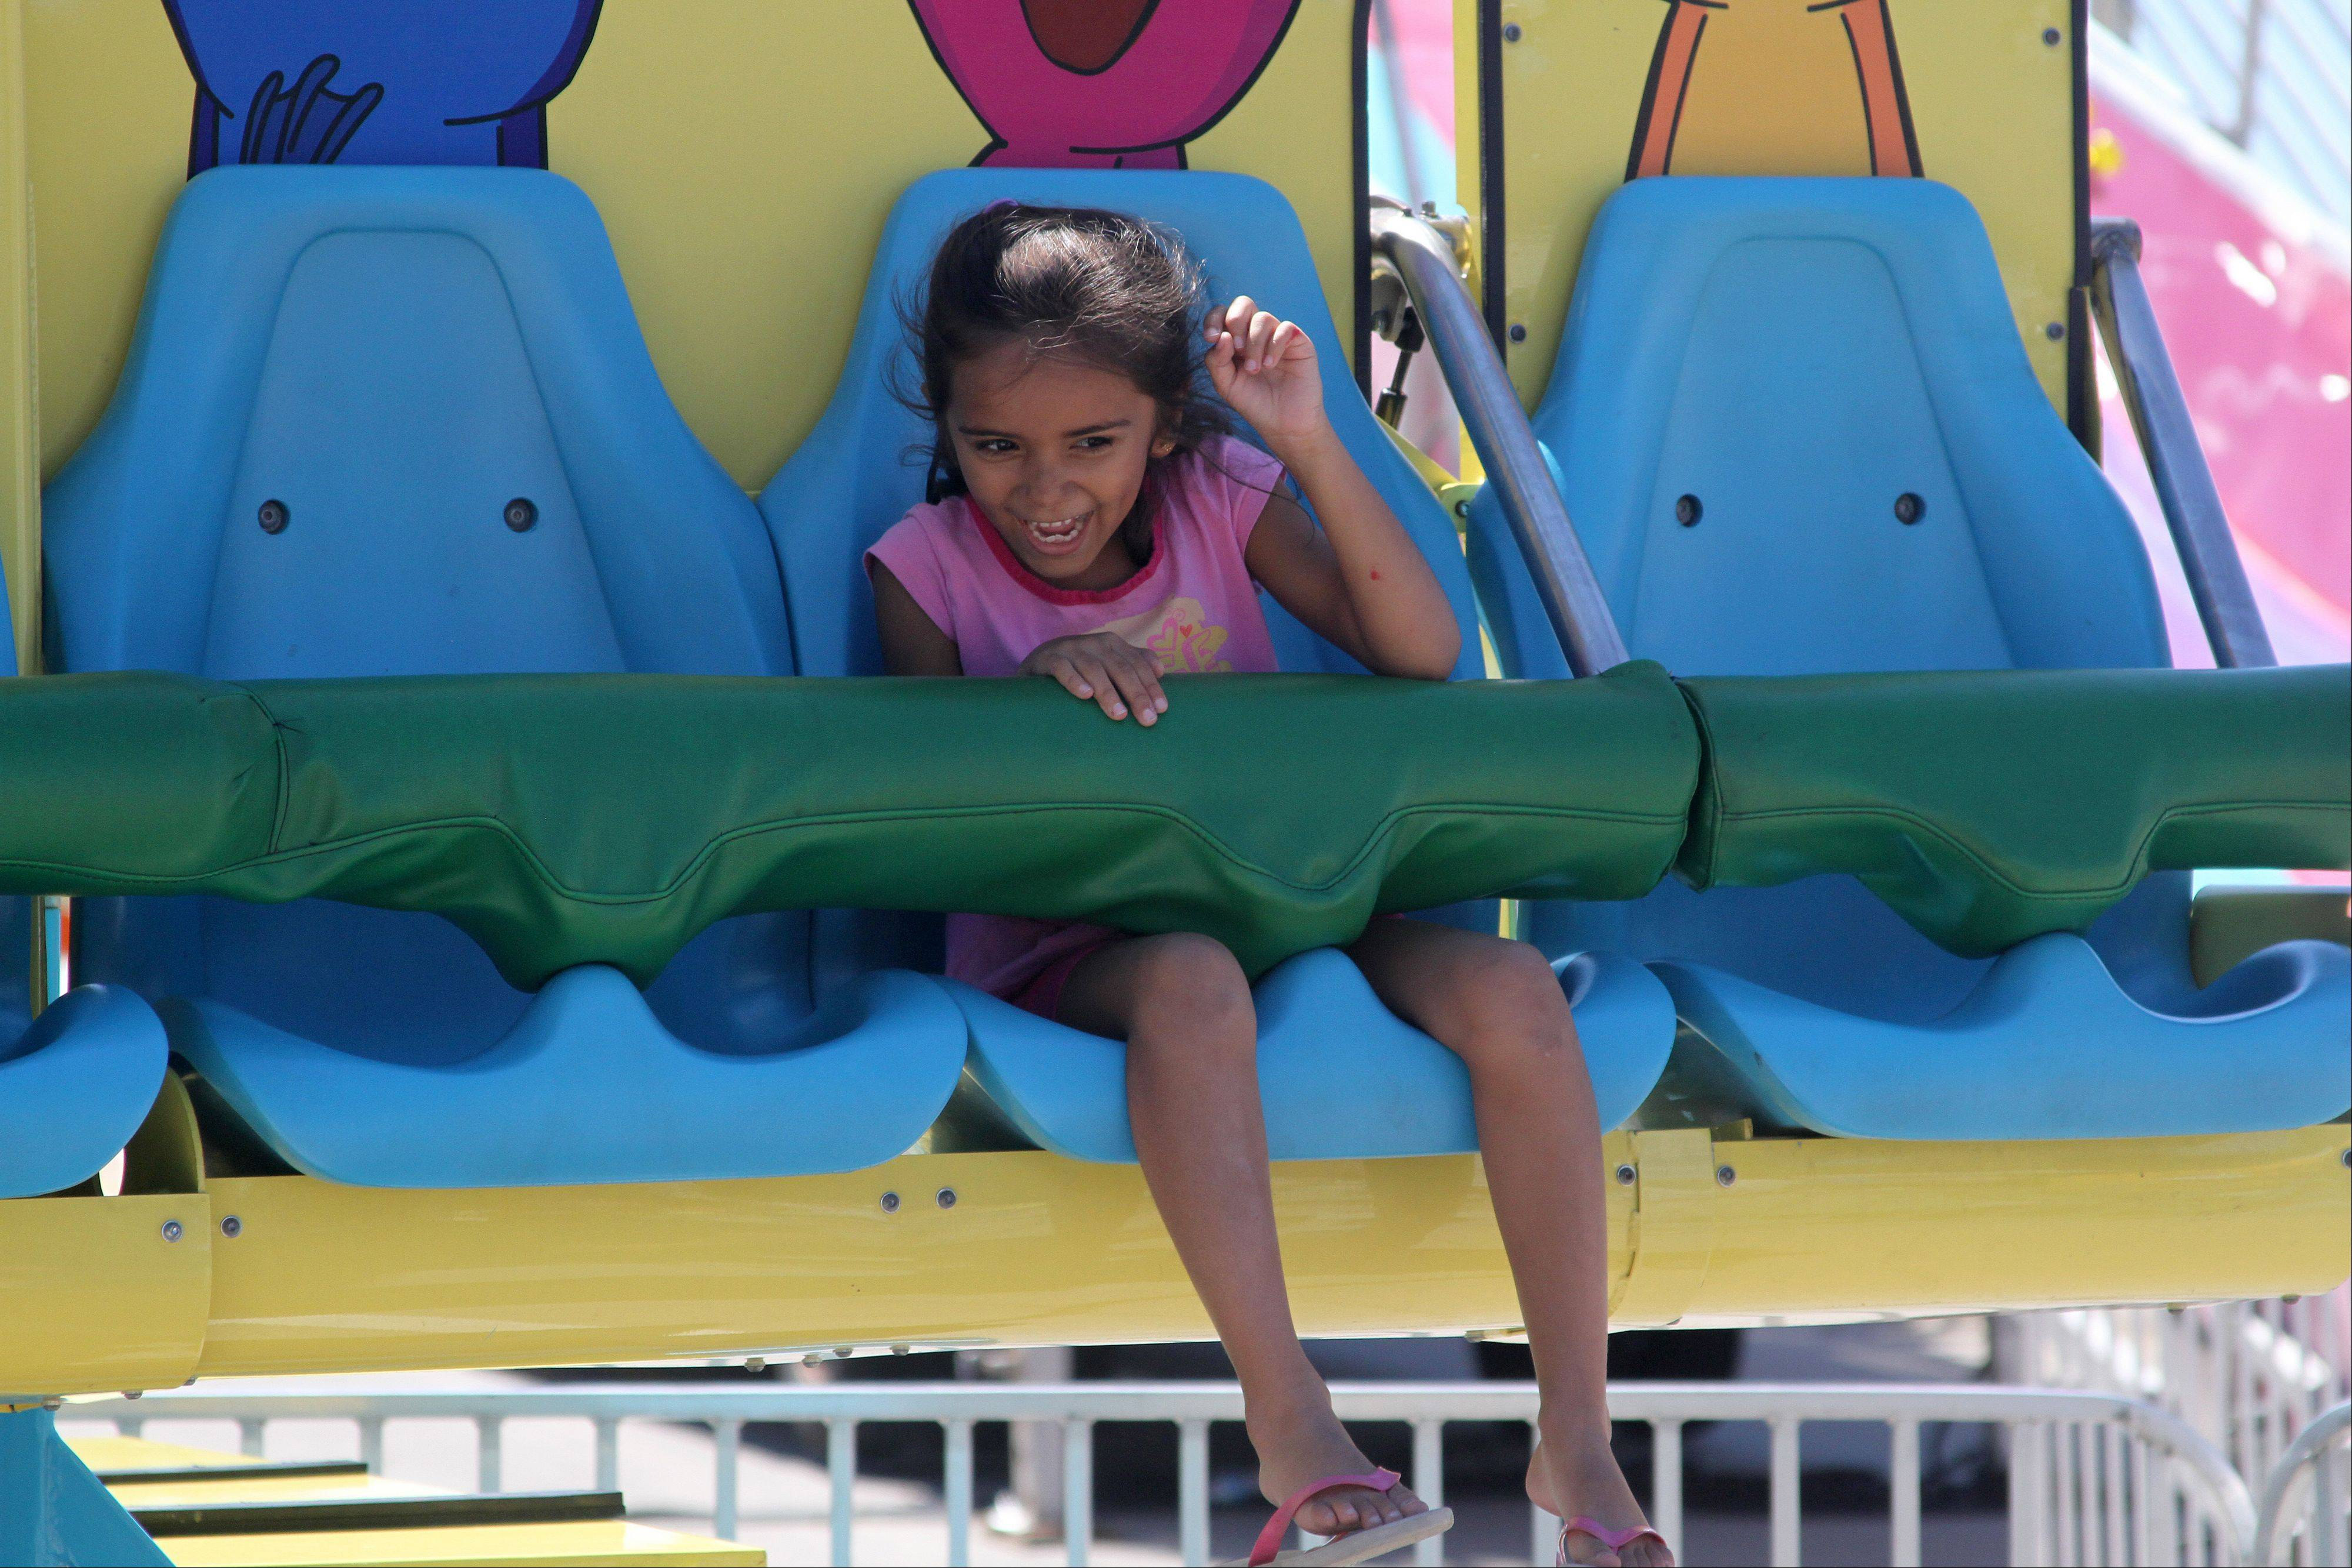 Bhakti Patel, 6, of Roselle rides the frog jump drop kiddie ride at the 2013 Taste of Roselle on Saturday, August 3, 2013. The three-day festival opened Friday and ends Sunday.